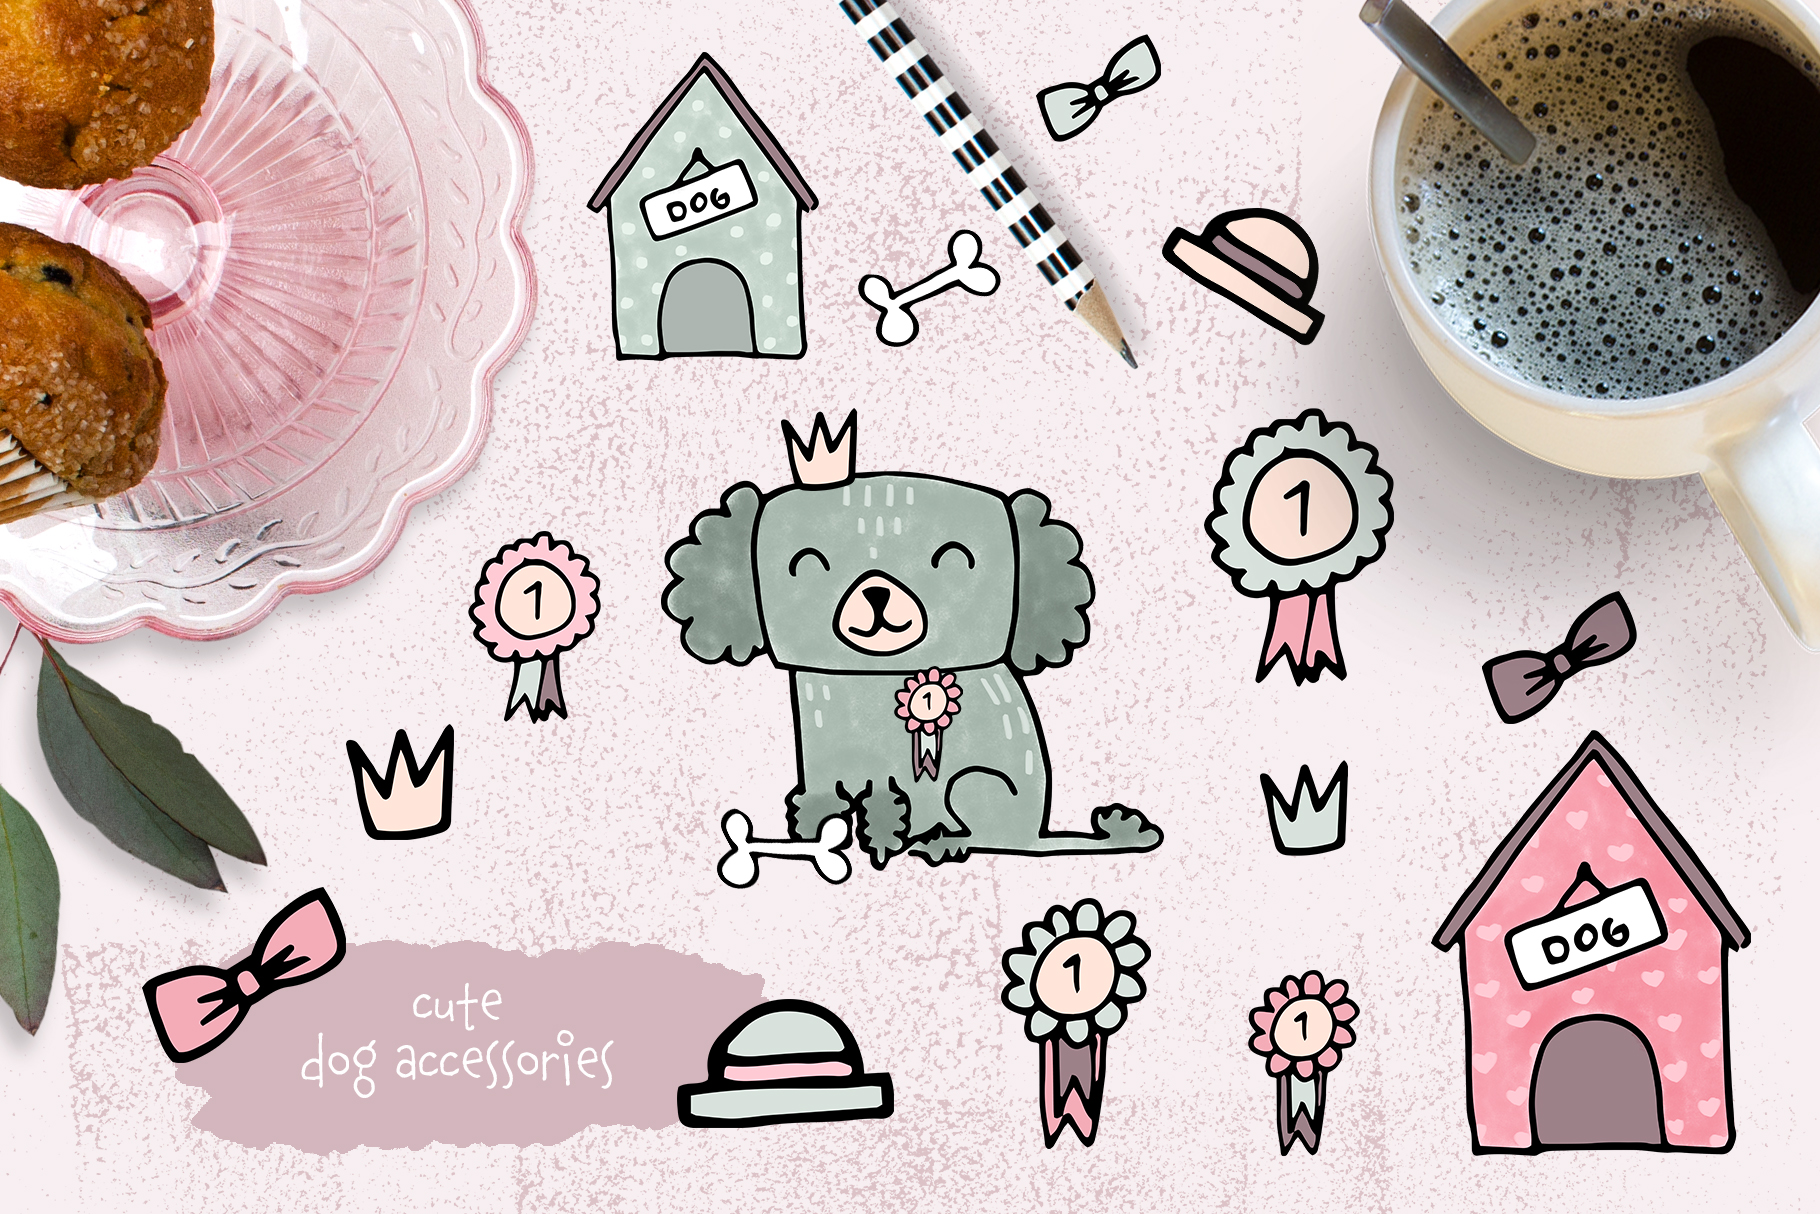 Dog clipart and patterns collection example image 3